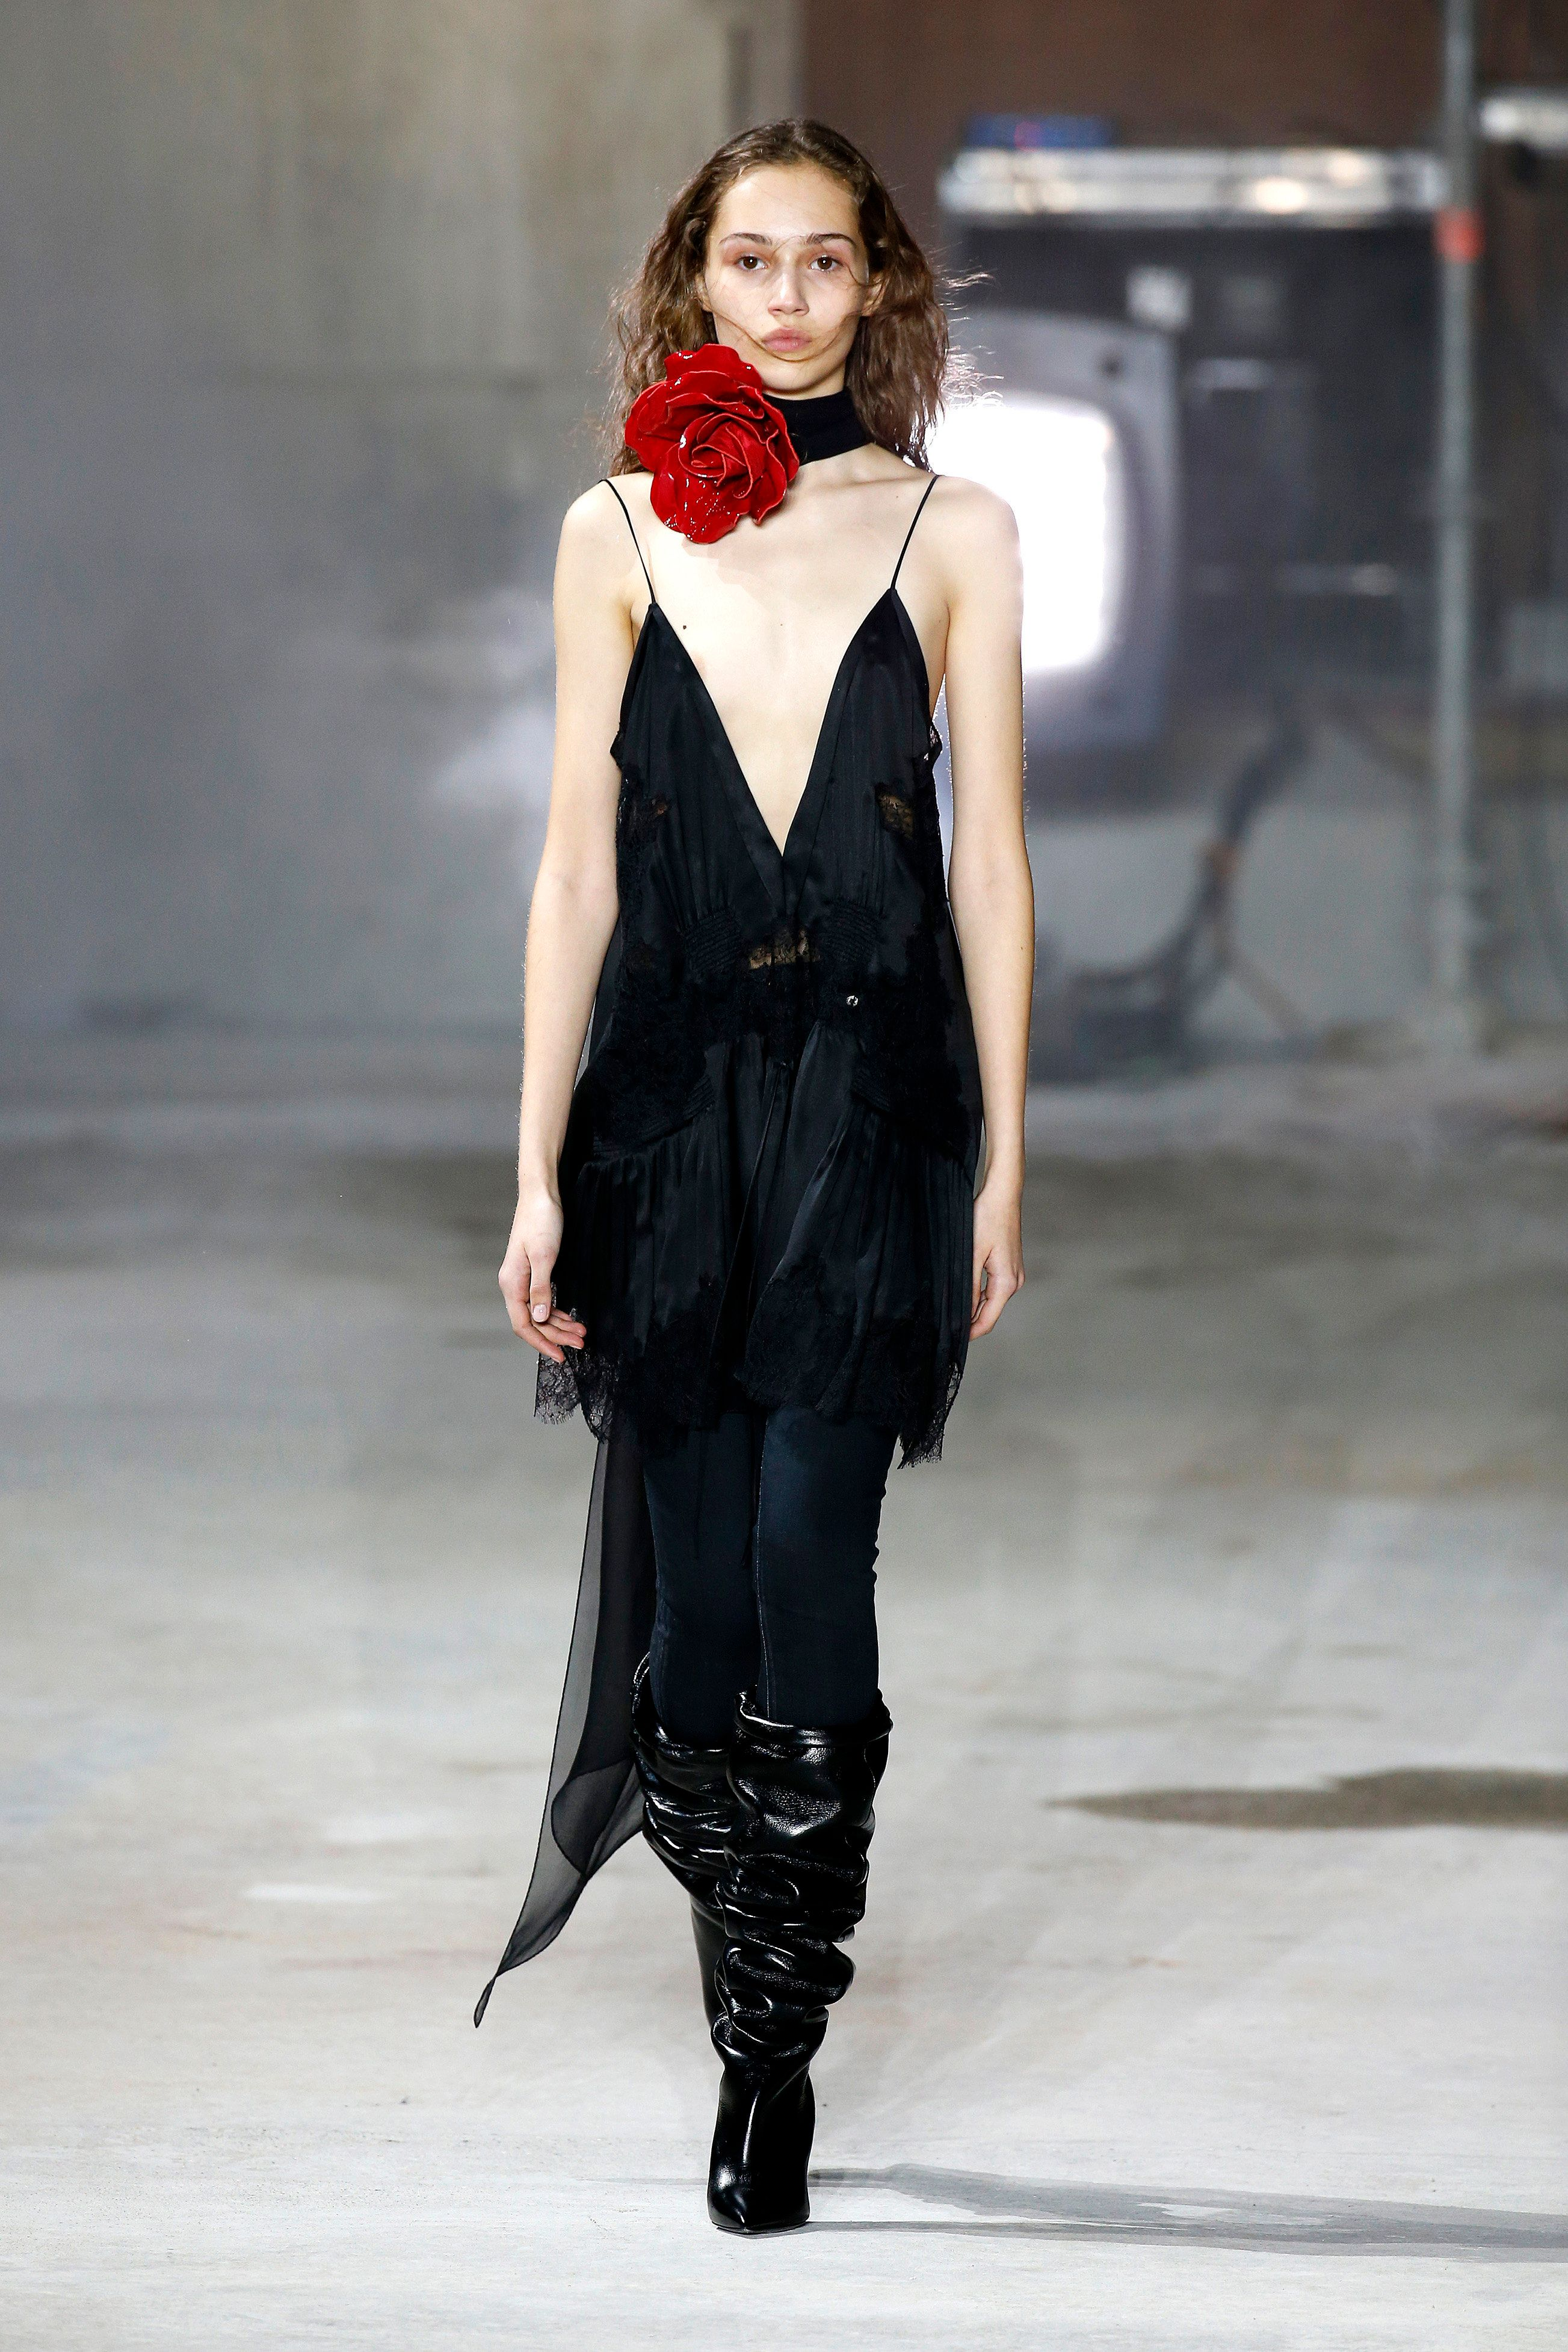 A model walks the runway during the Saint Laurent show for Paris Fashion Week on 28 February 2017 in...